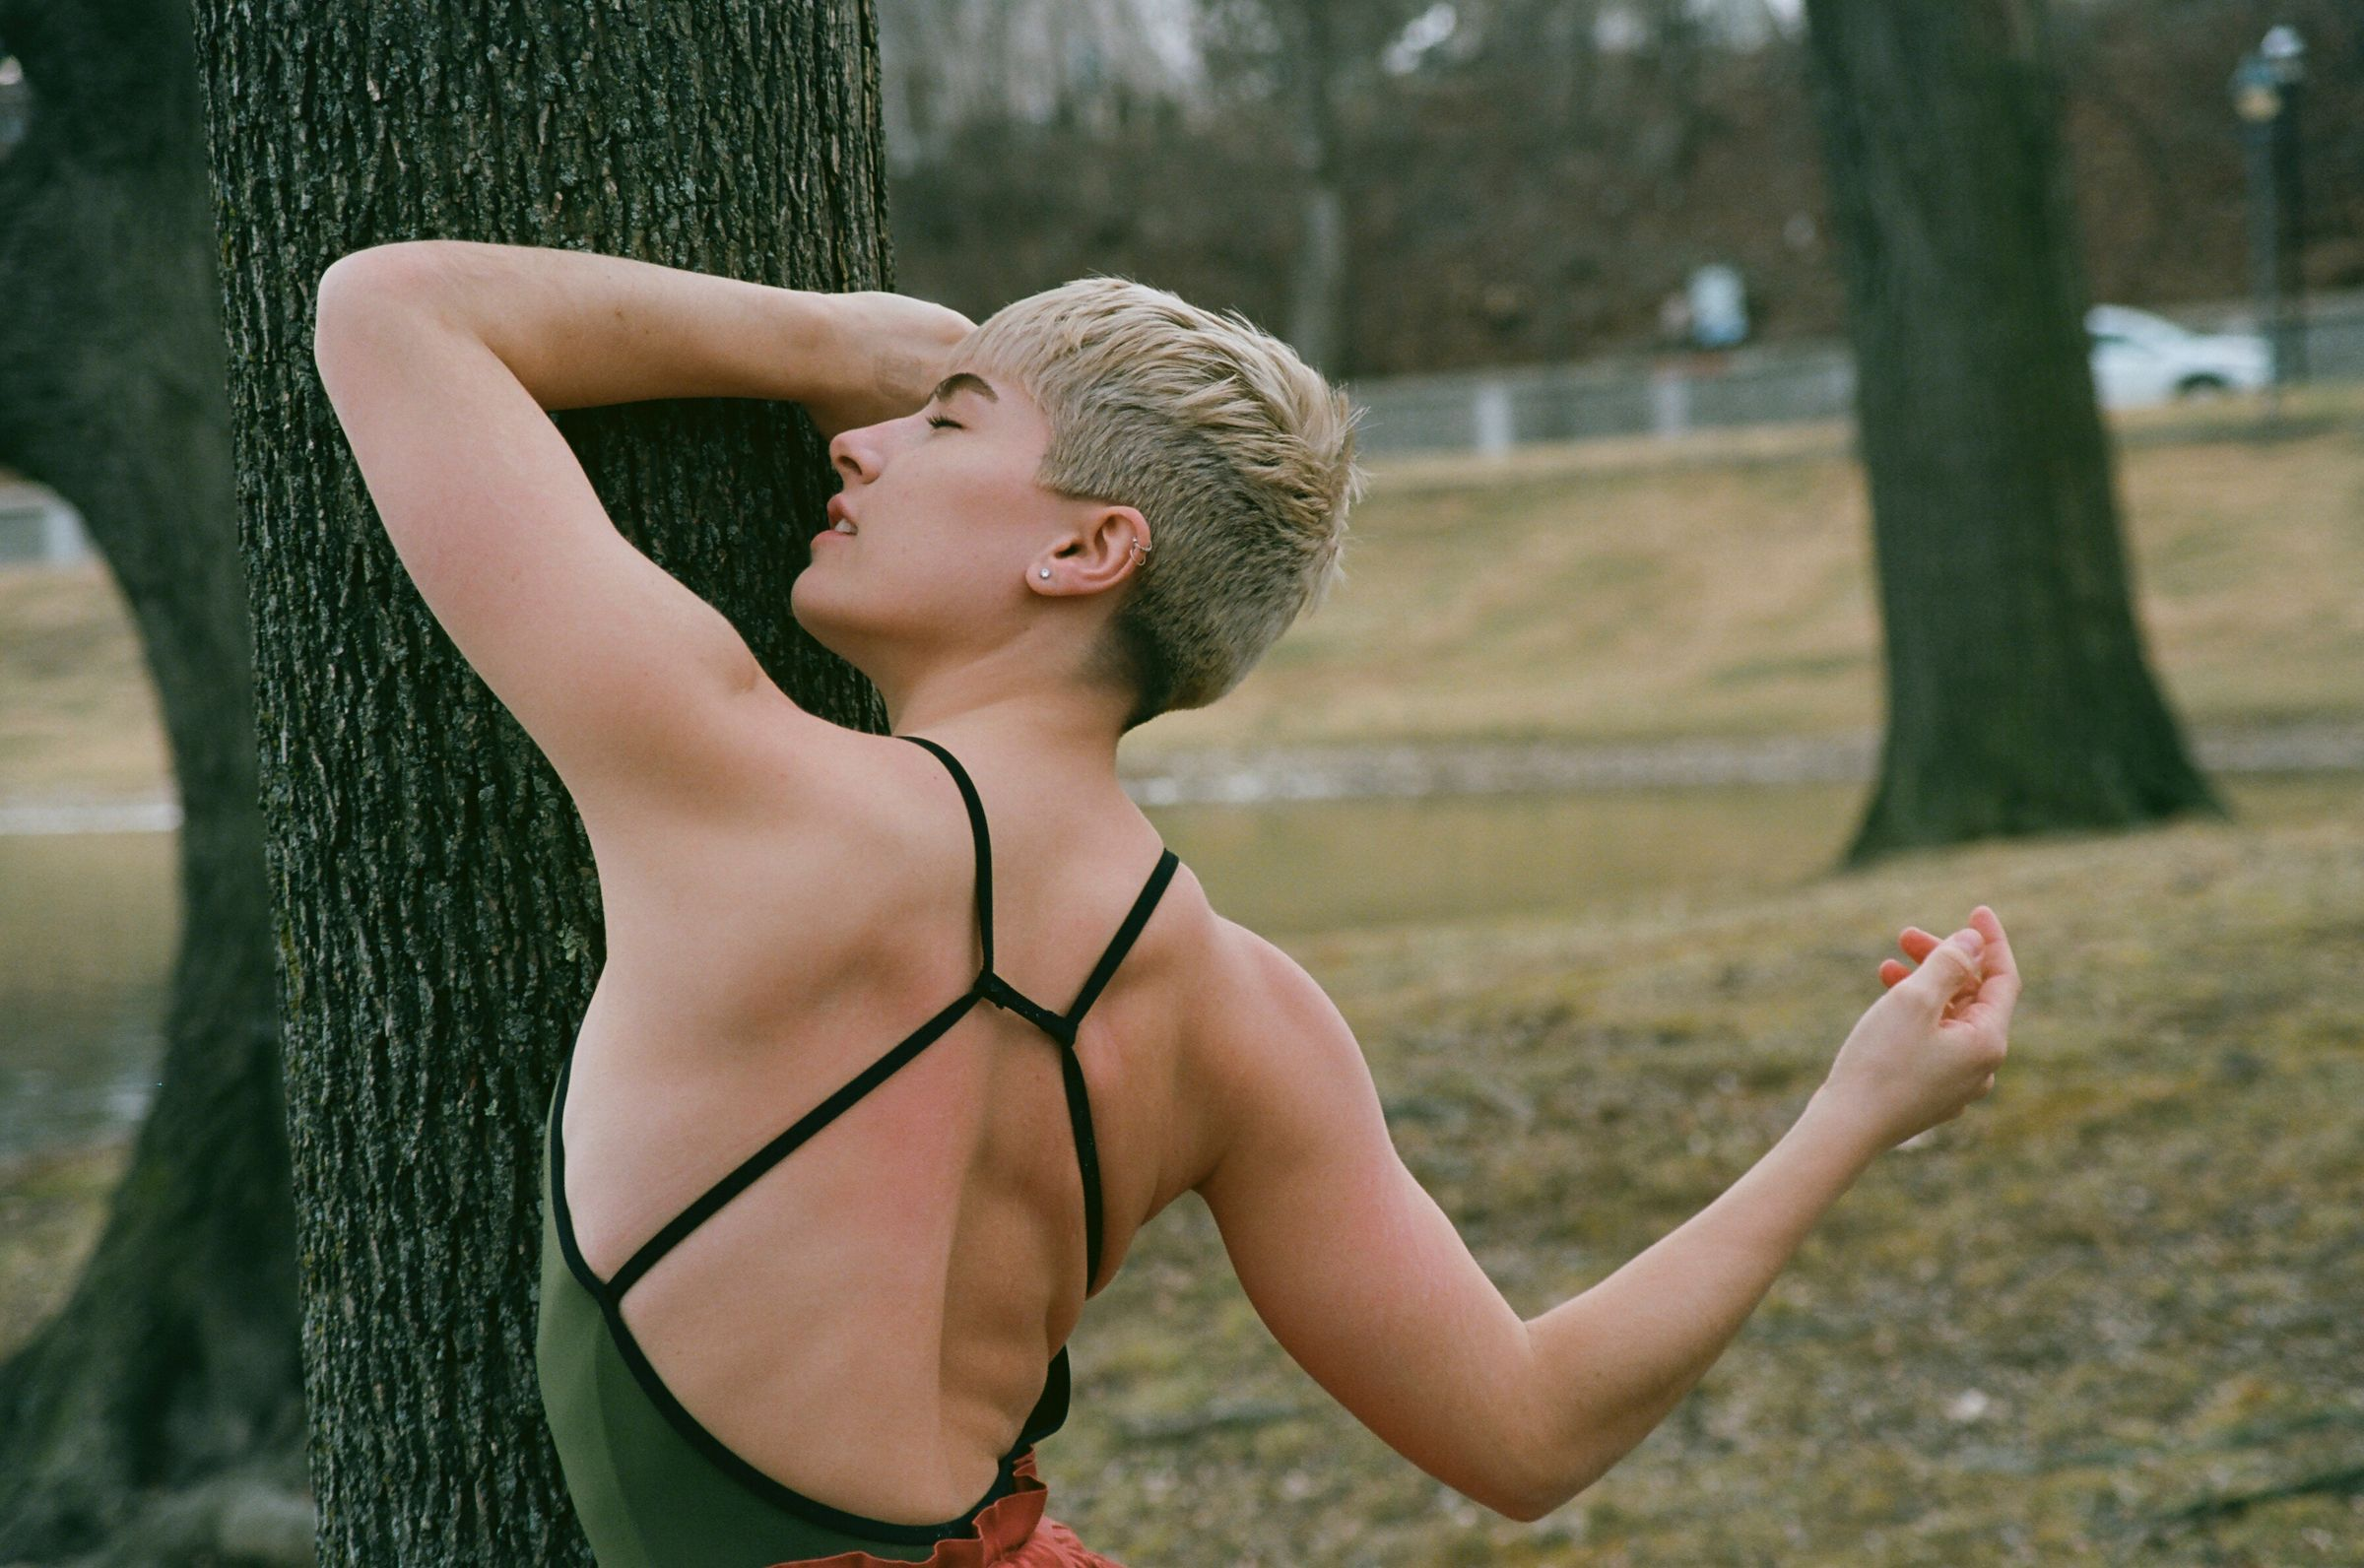 A woman dancing and swaying outside in front of a tree